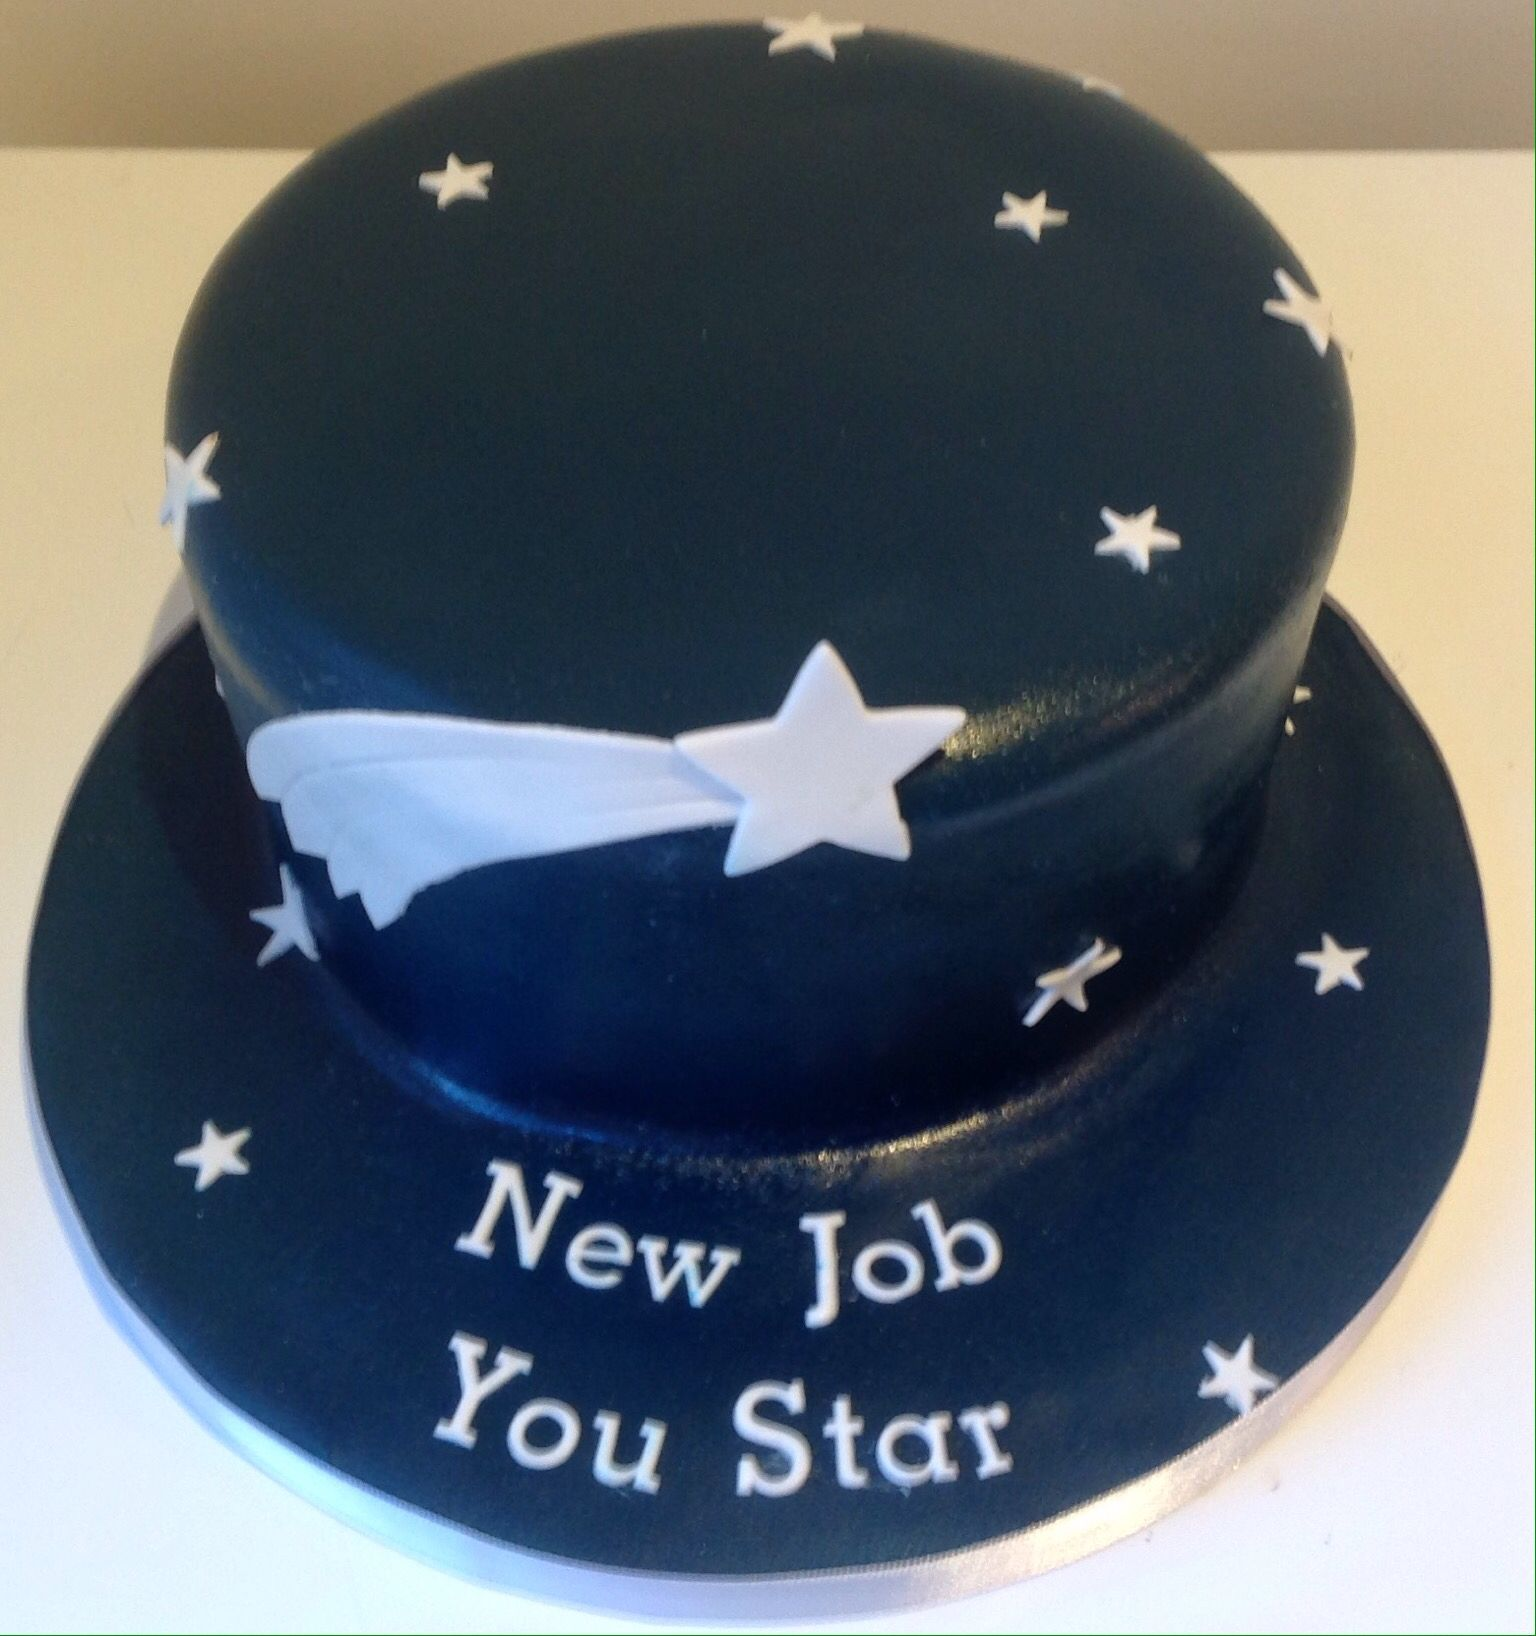 New Job You Star Cake To Wish Friend Good Luck For New Job